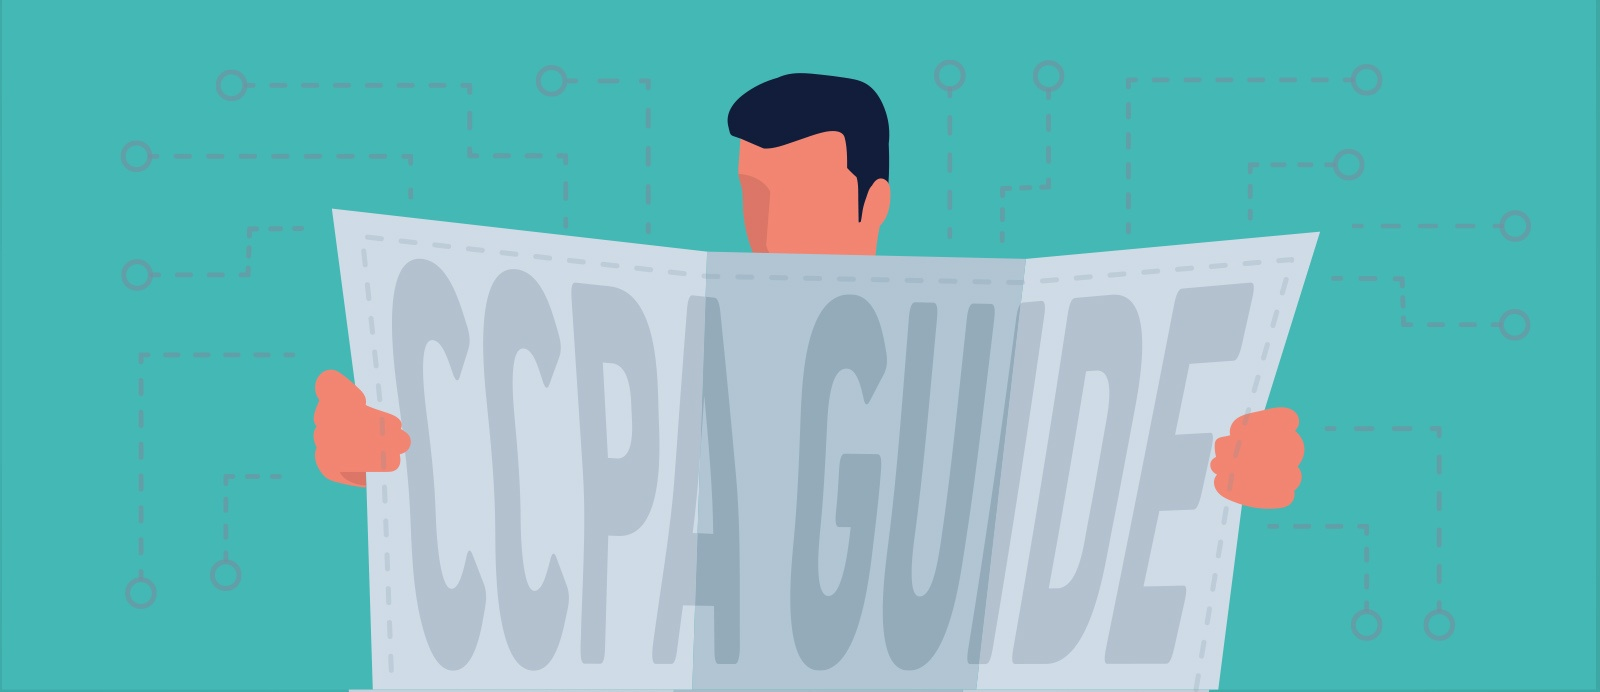 CCPA Basic Guide